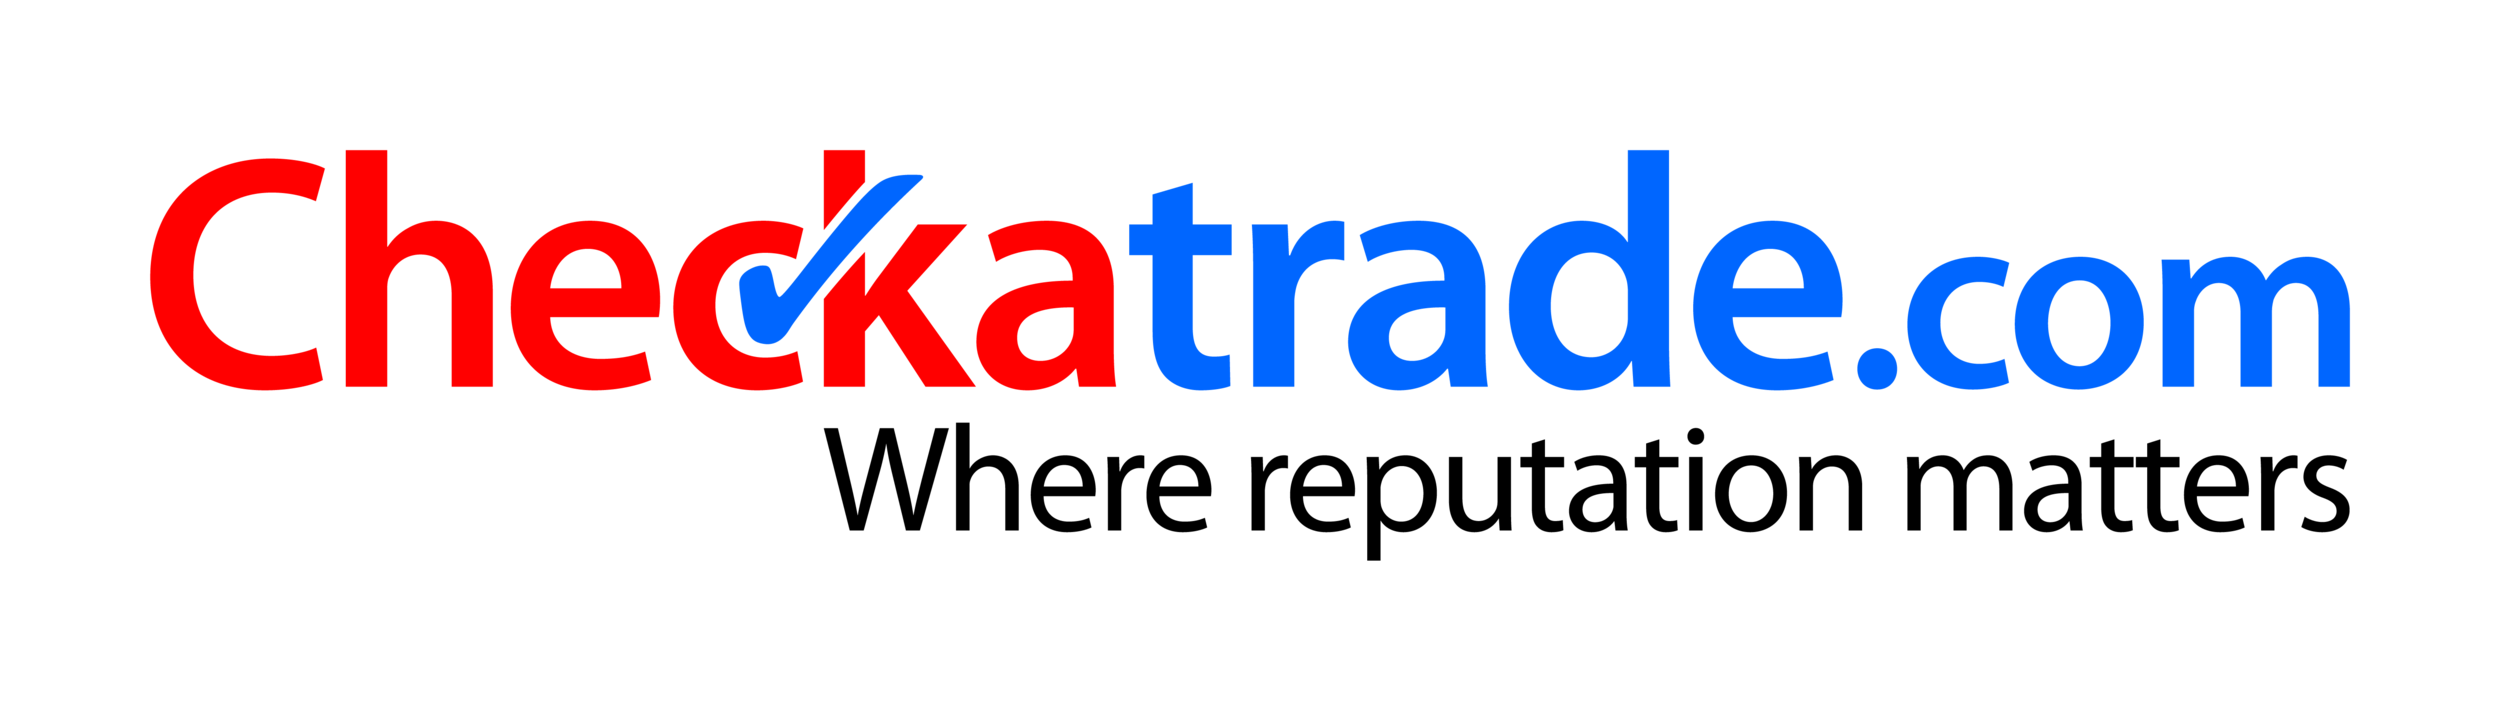 Red and blue Checkatrade logo, where reputation matters written in black